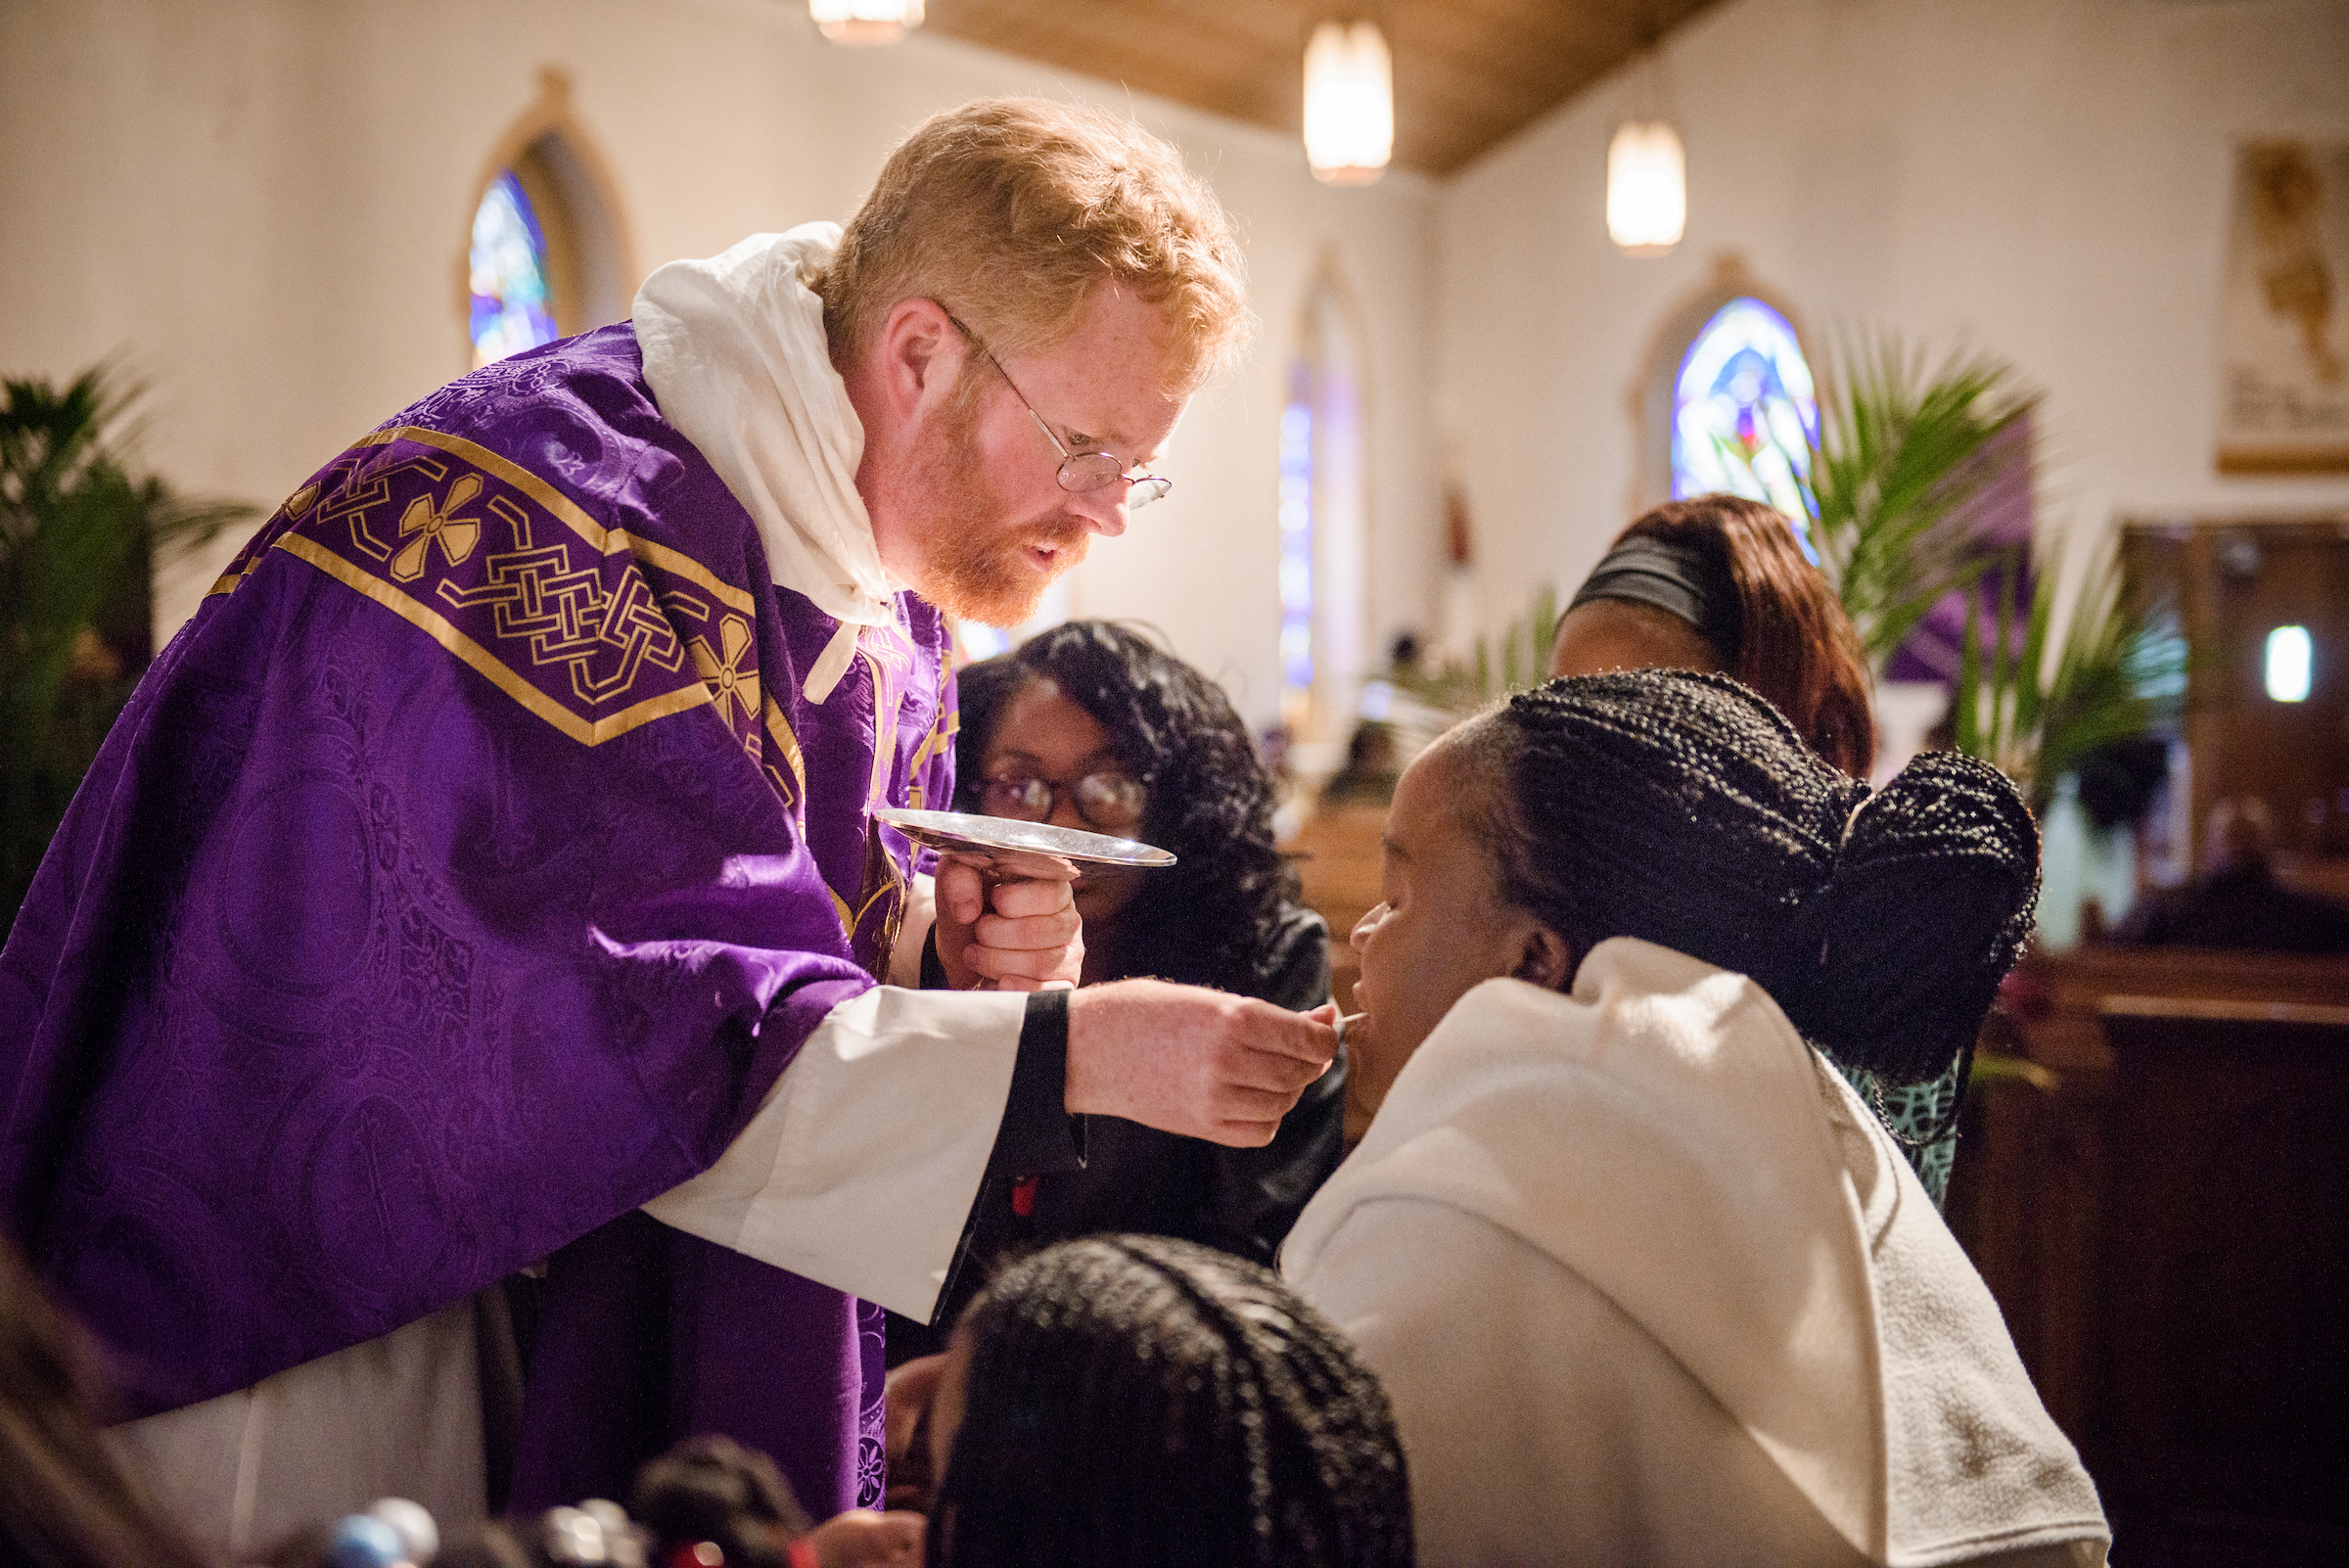 The Rev. Roy Axel Coats, pastor of Lutheran Church of the Redeemer, Baltimore, distributes the Sacrament on Palm Sunday, March 25, 2018. LCMS Communications/Erik M. Lunsford